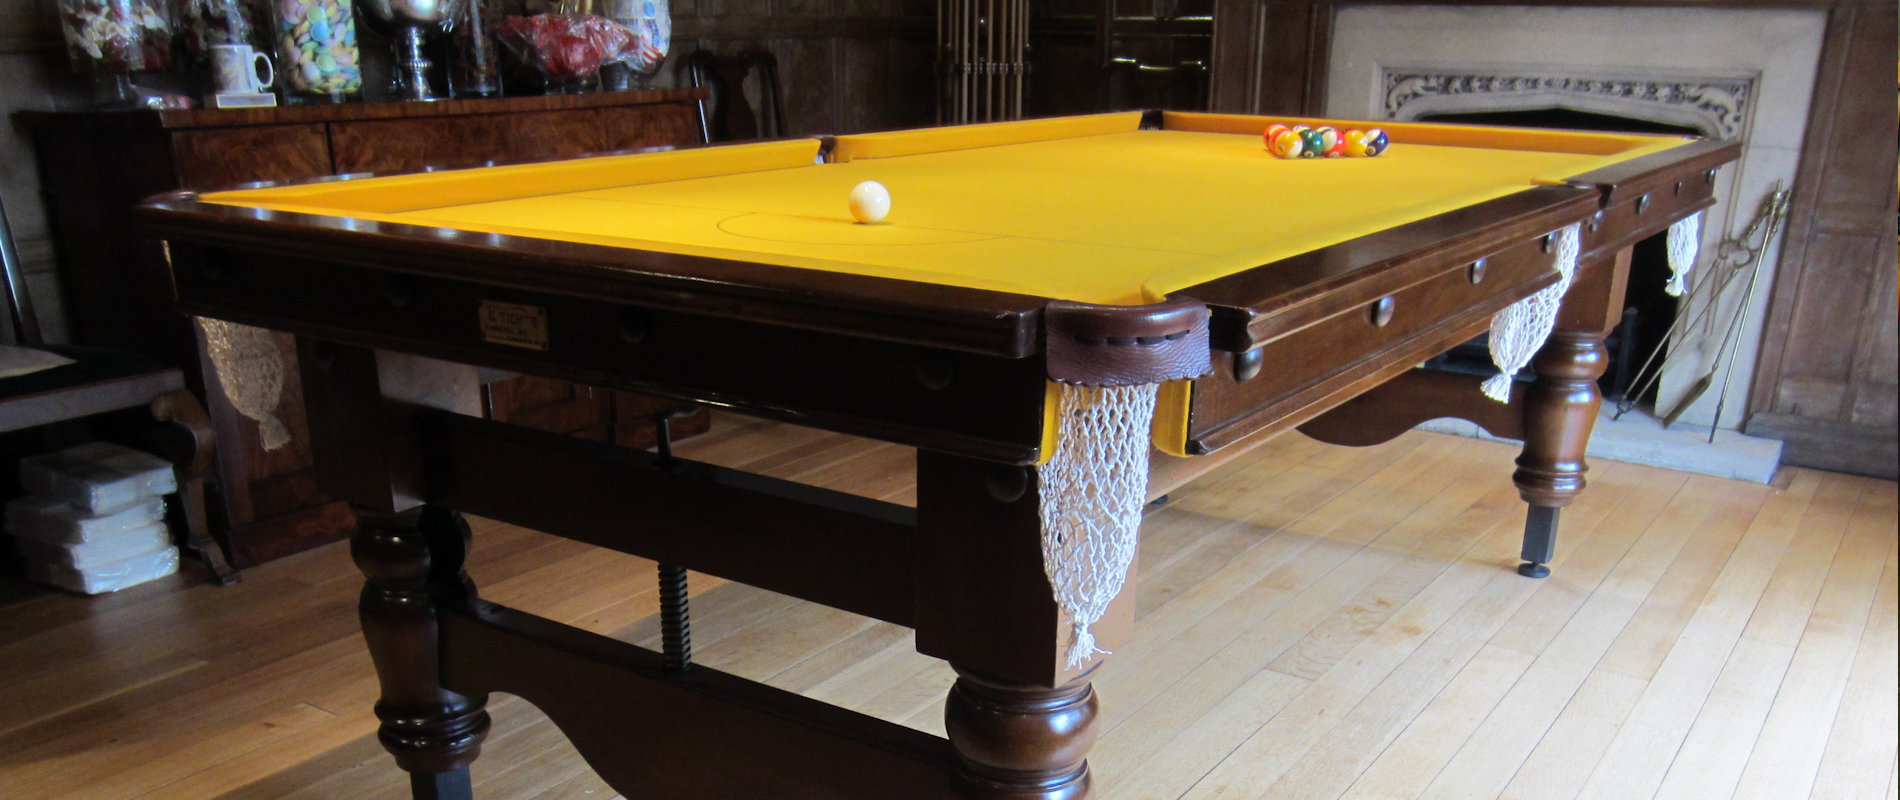 Snooker Tables 10ft, 9ft, 8ft, 7ft, 6ft sizes